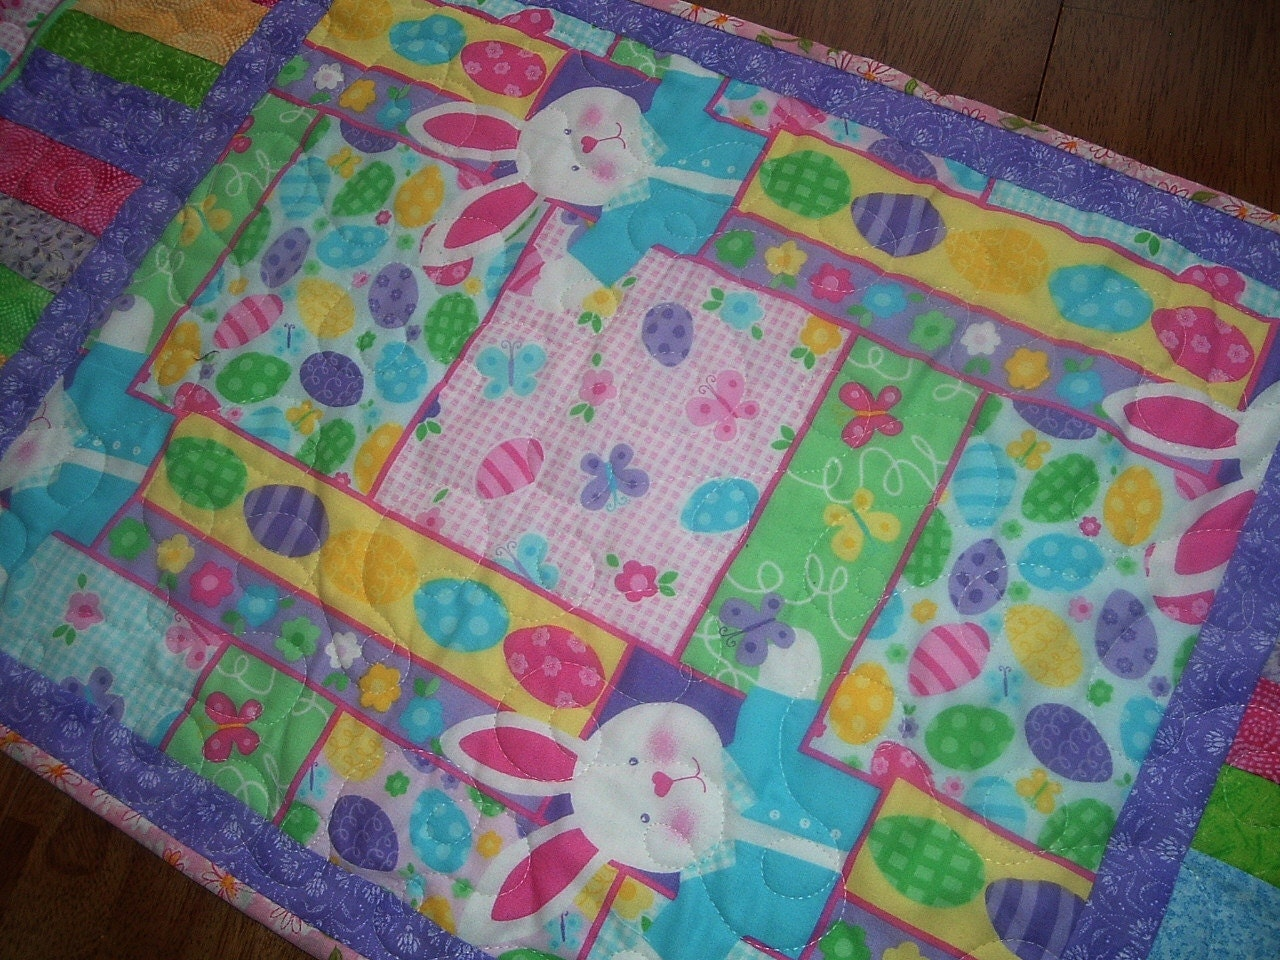 quilted easter bunny table runner 16 x 34 inches by. Black Bedroom Furniture Sets. Home Design Ideas